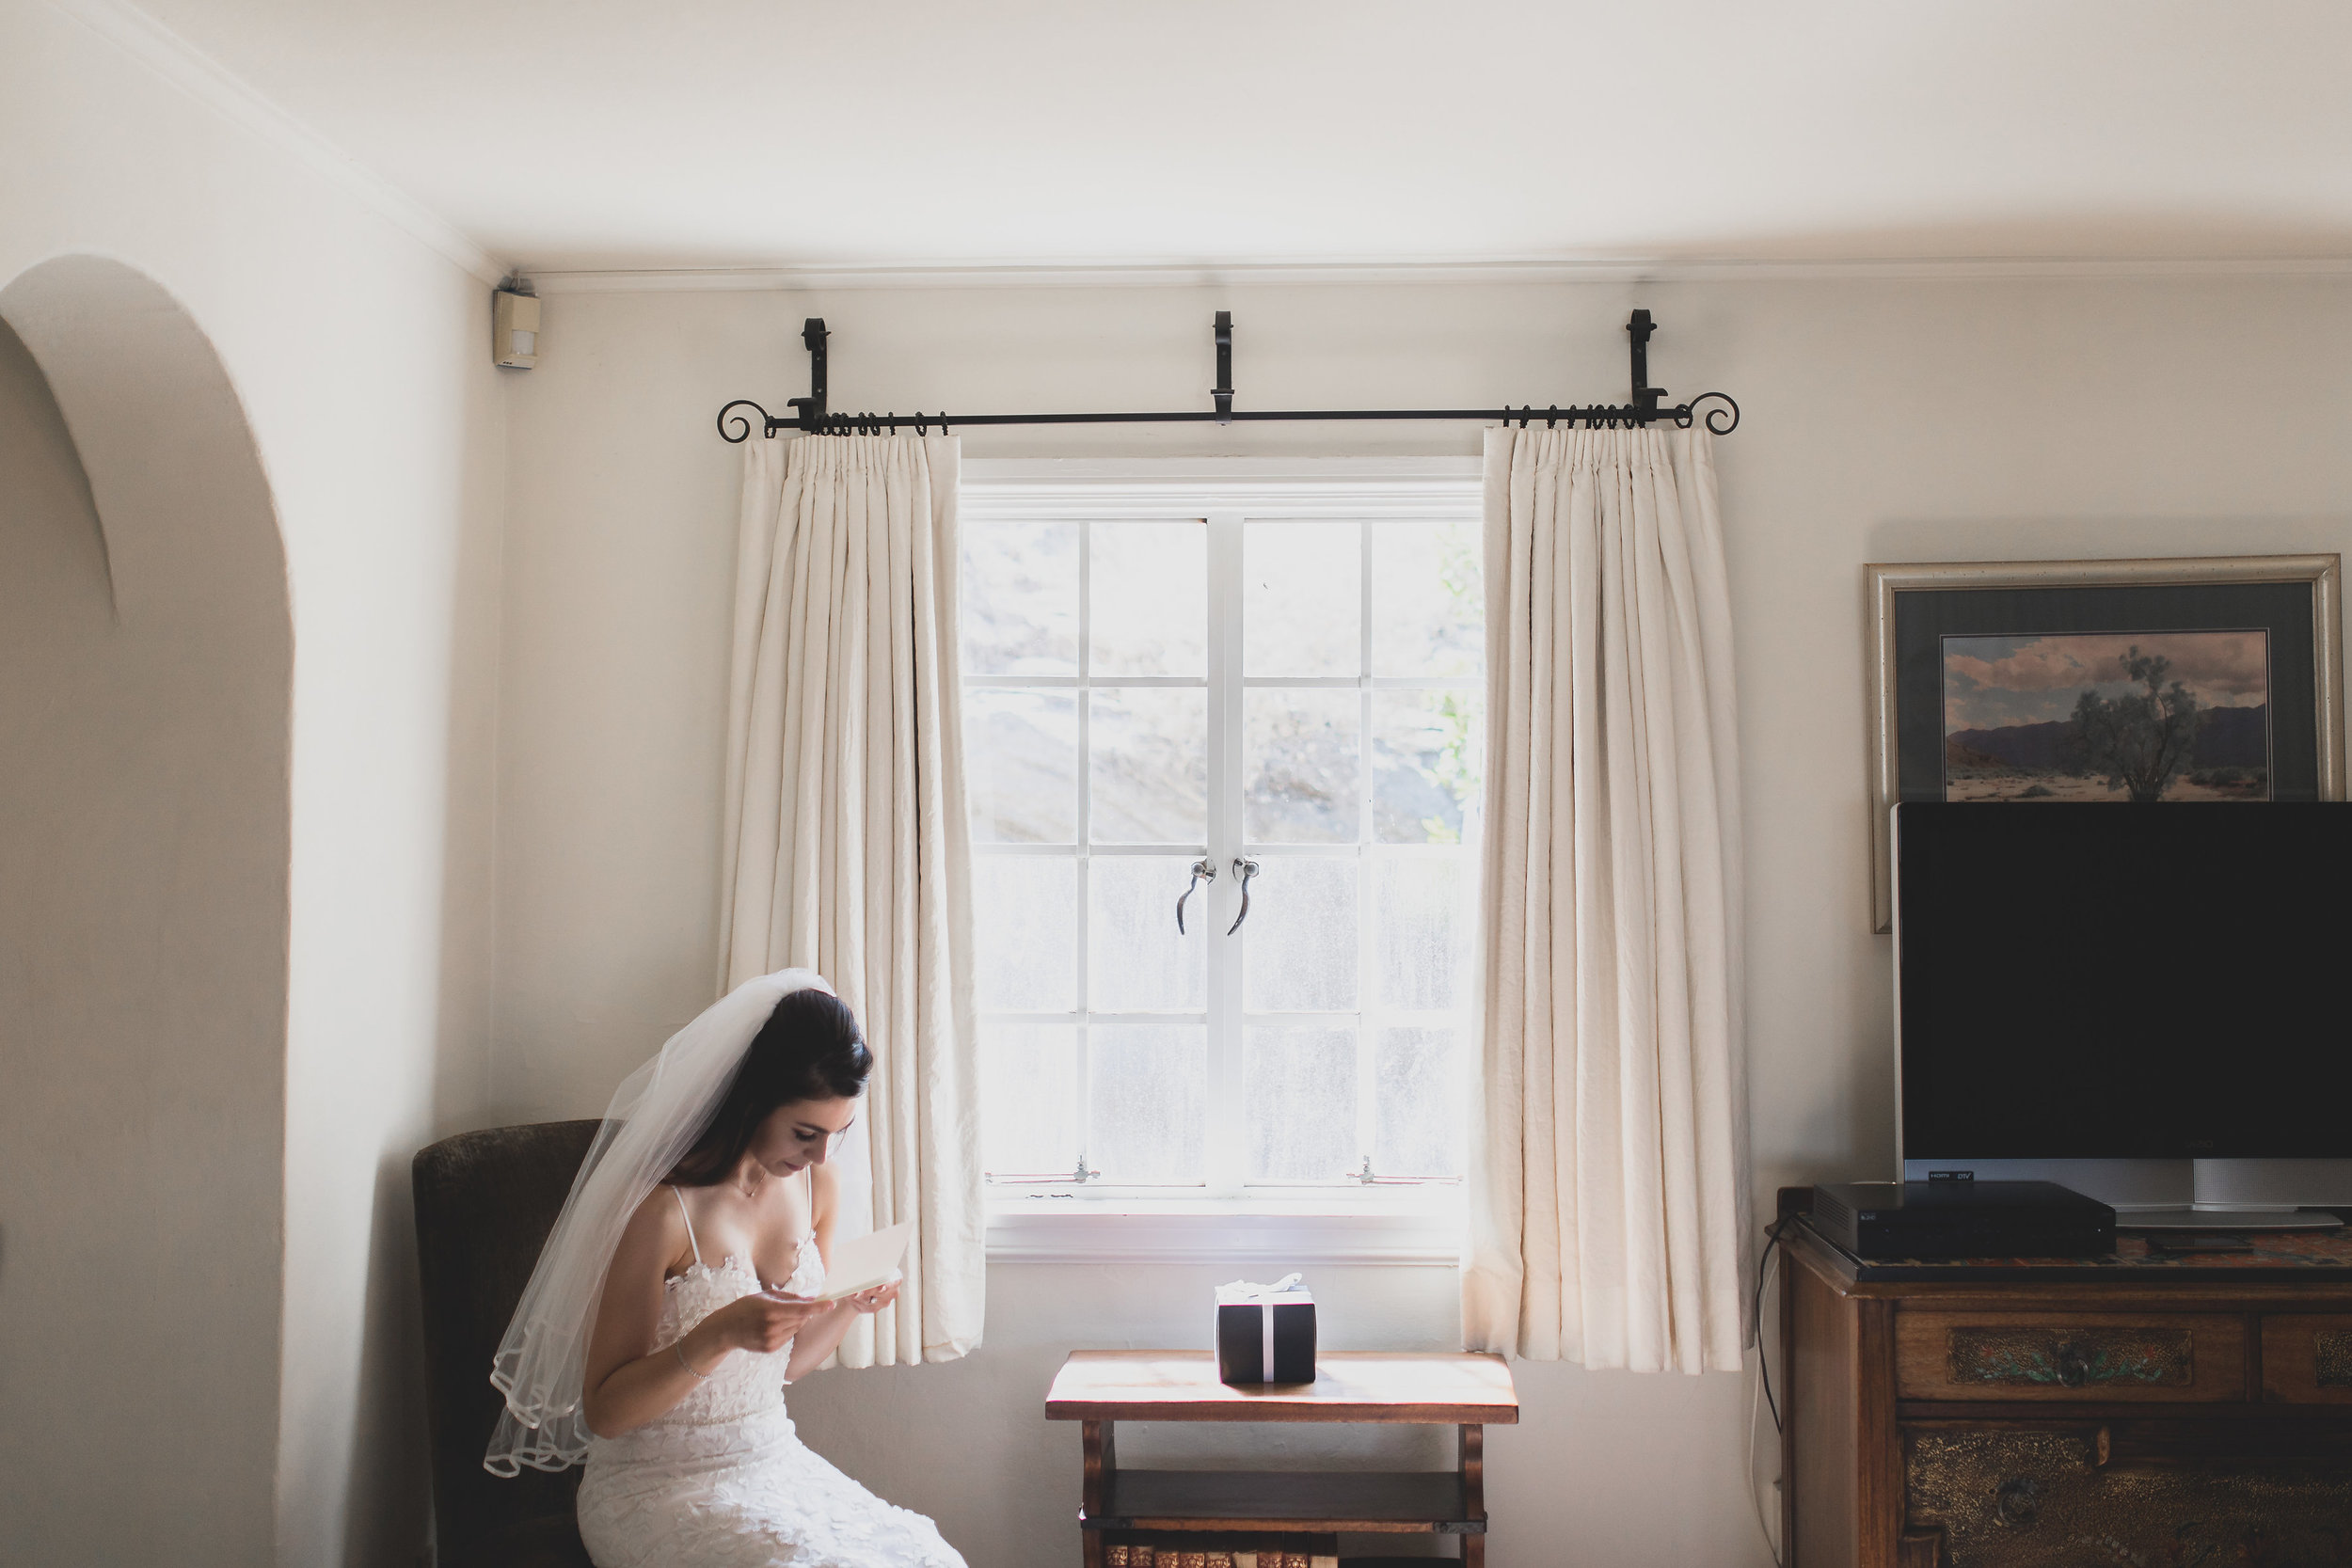 A bride sitting by the window in a room alone reading a letter.